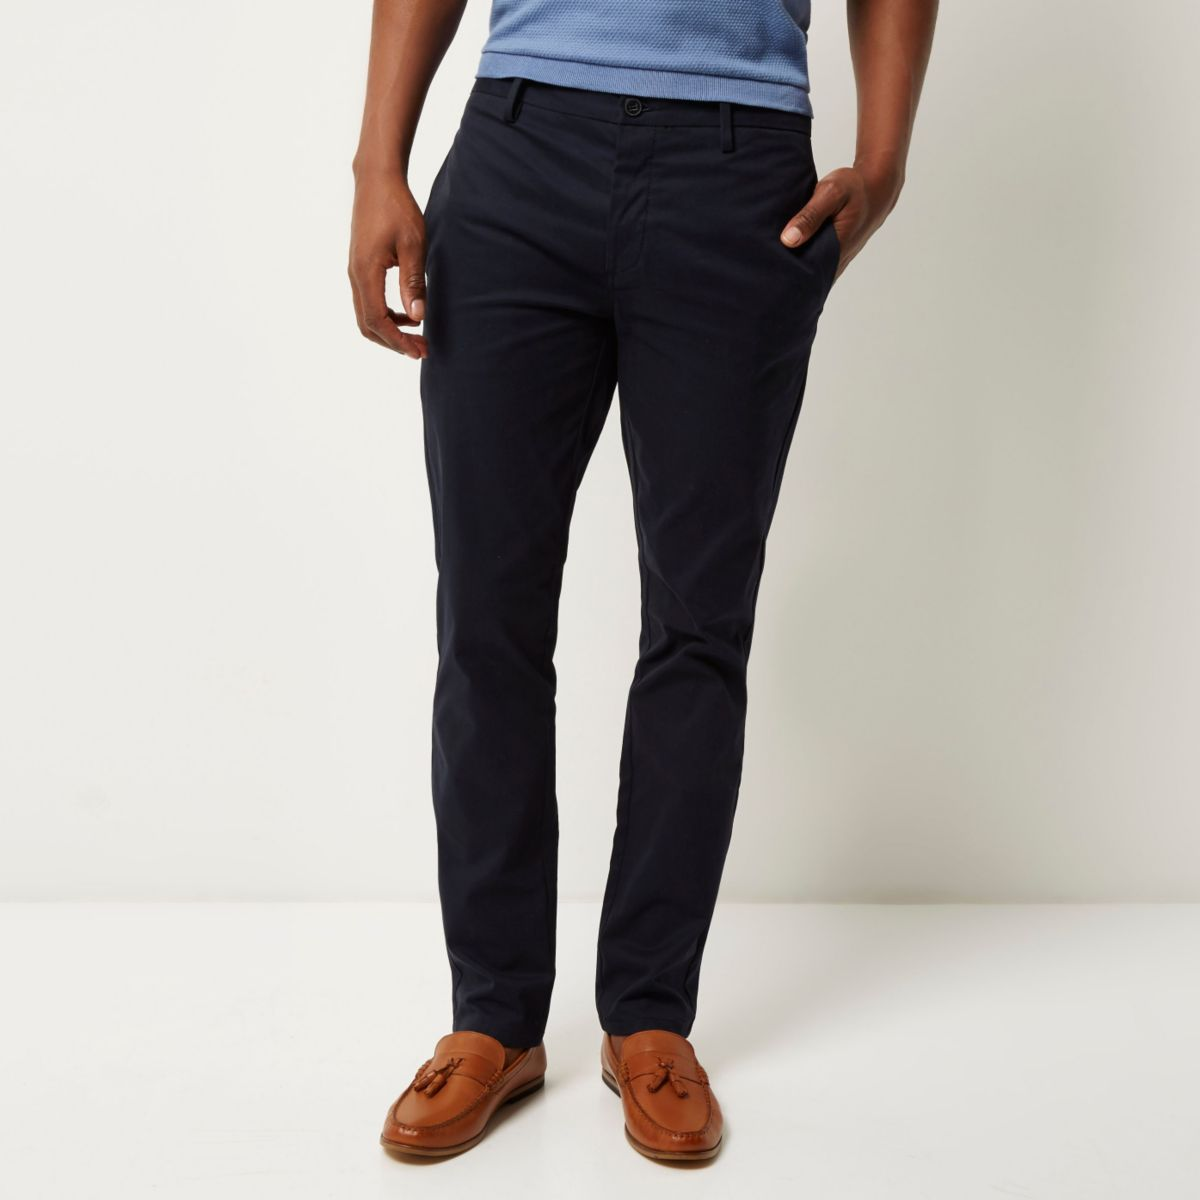 Navy stretch slim fit chino pants